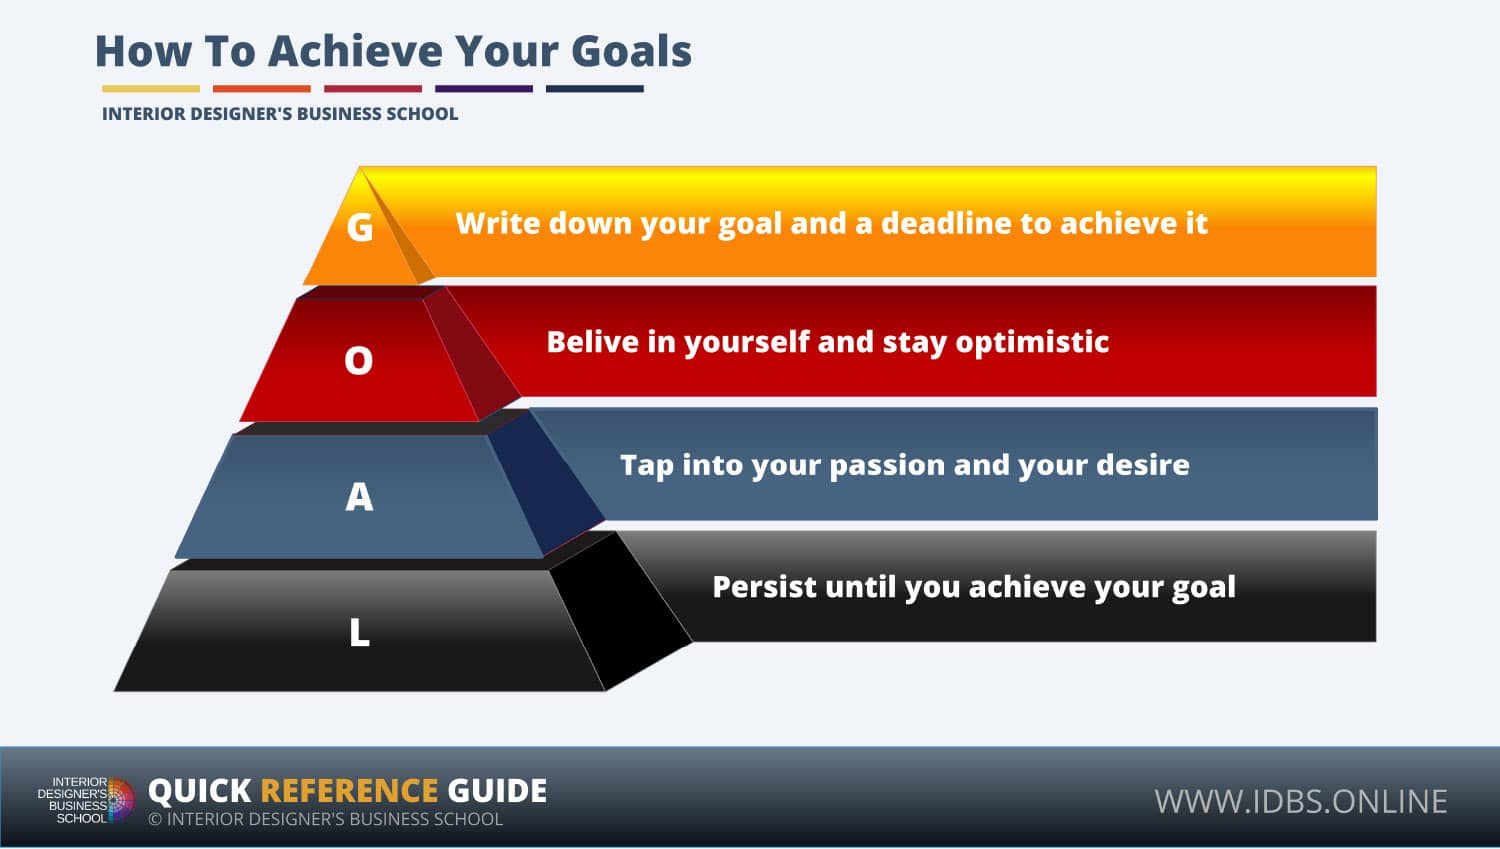 How To Achieve Your Goals IDBS